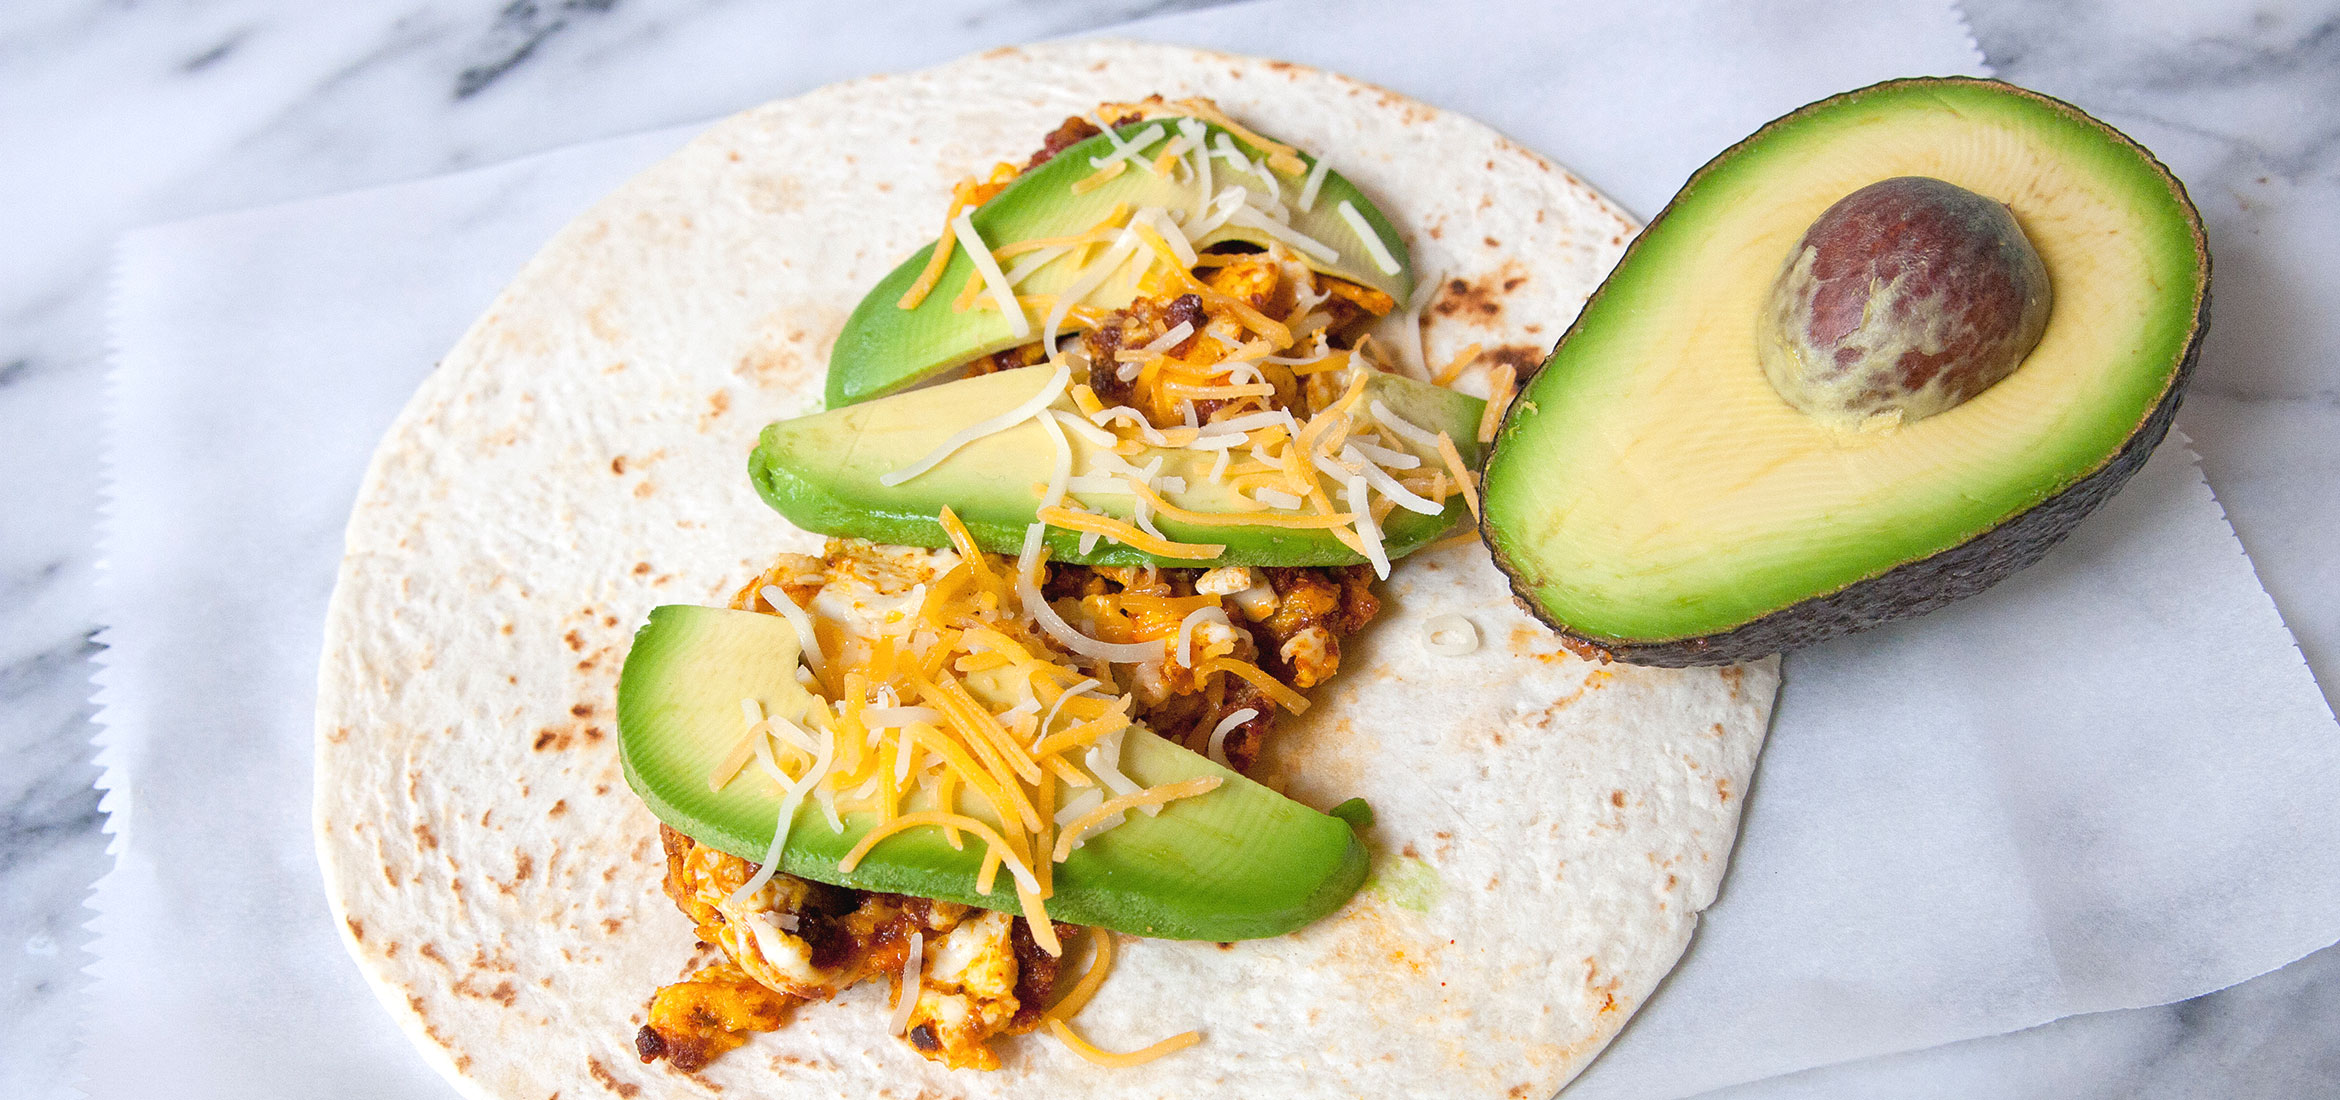 Home . Recipes . Breakfast . Breakfast Burritos with Chorizo and Eggs